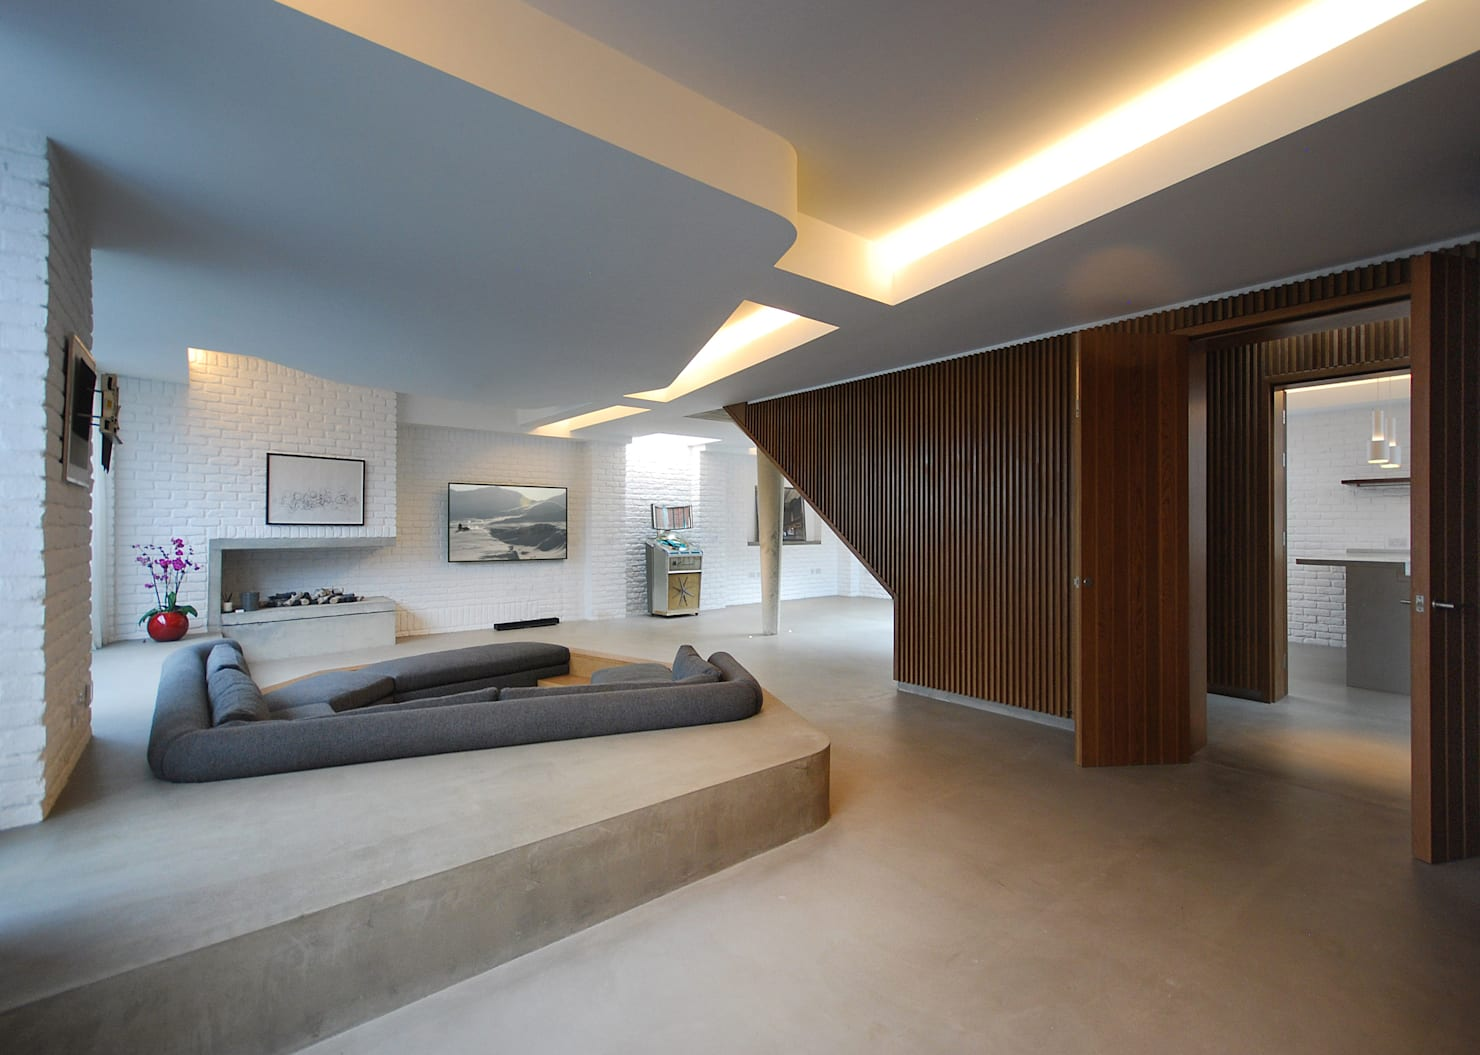 13 great ideas for ceiling lighting